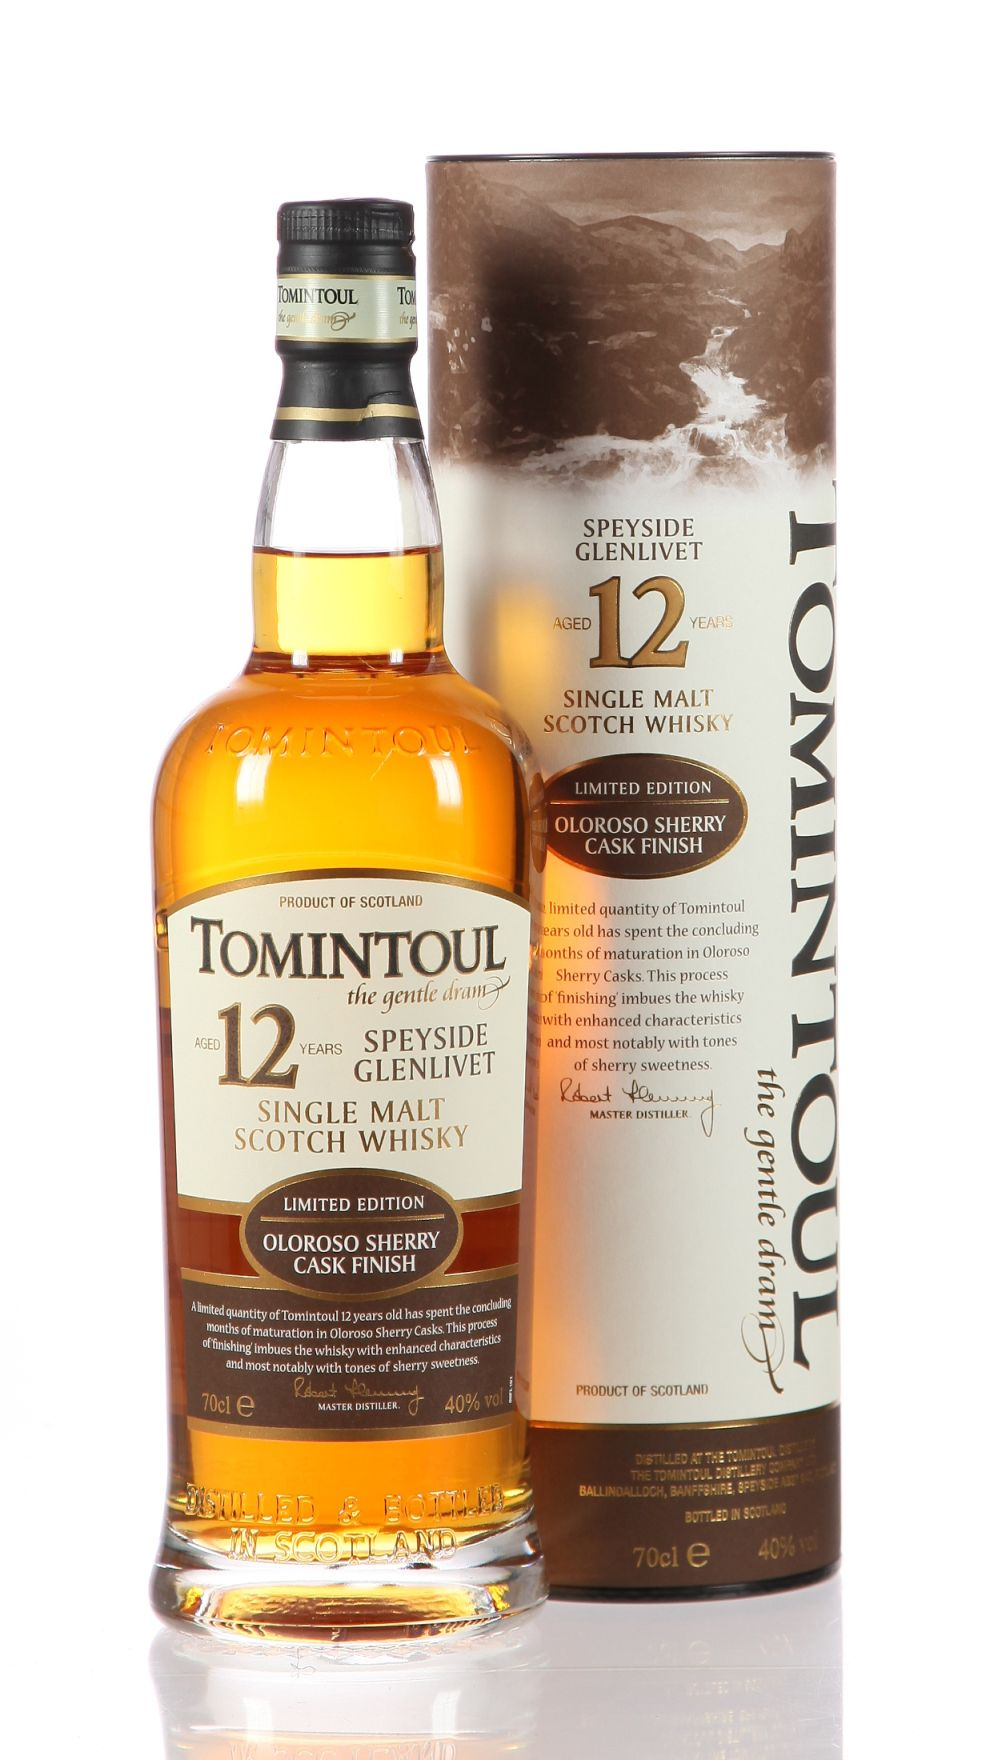 Tomintoul Oloroso Sherry Finish